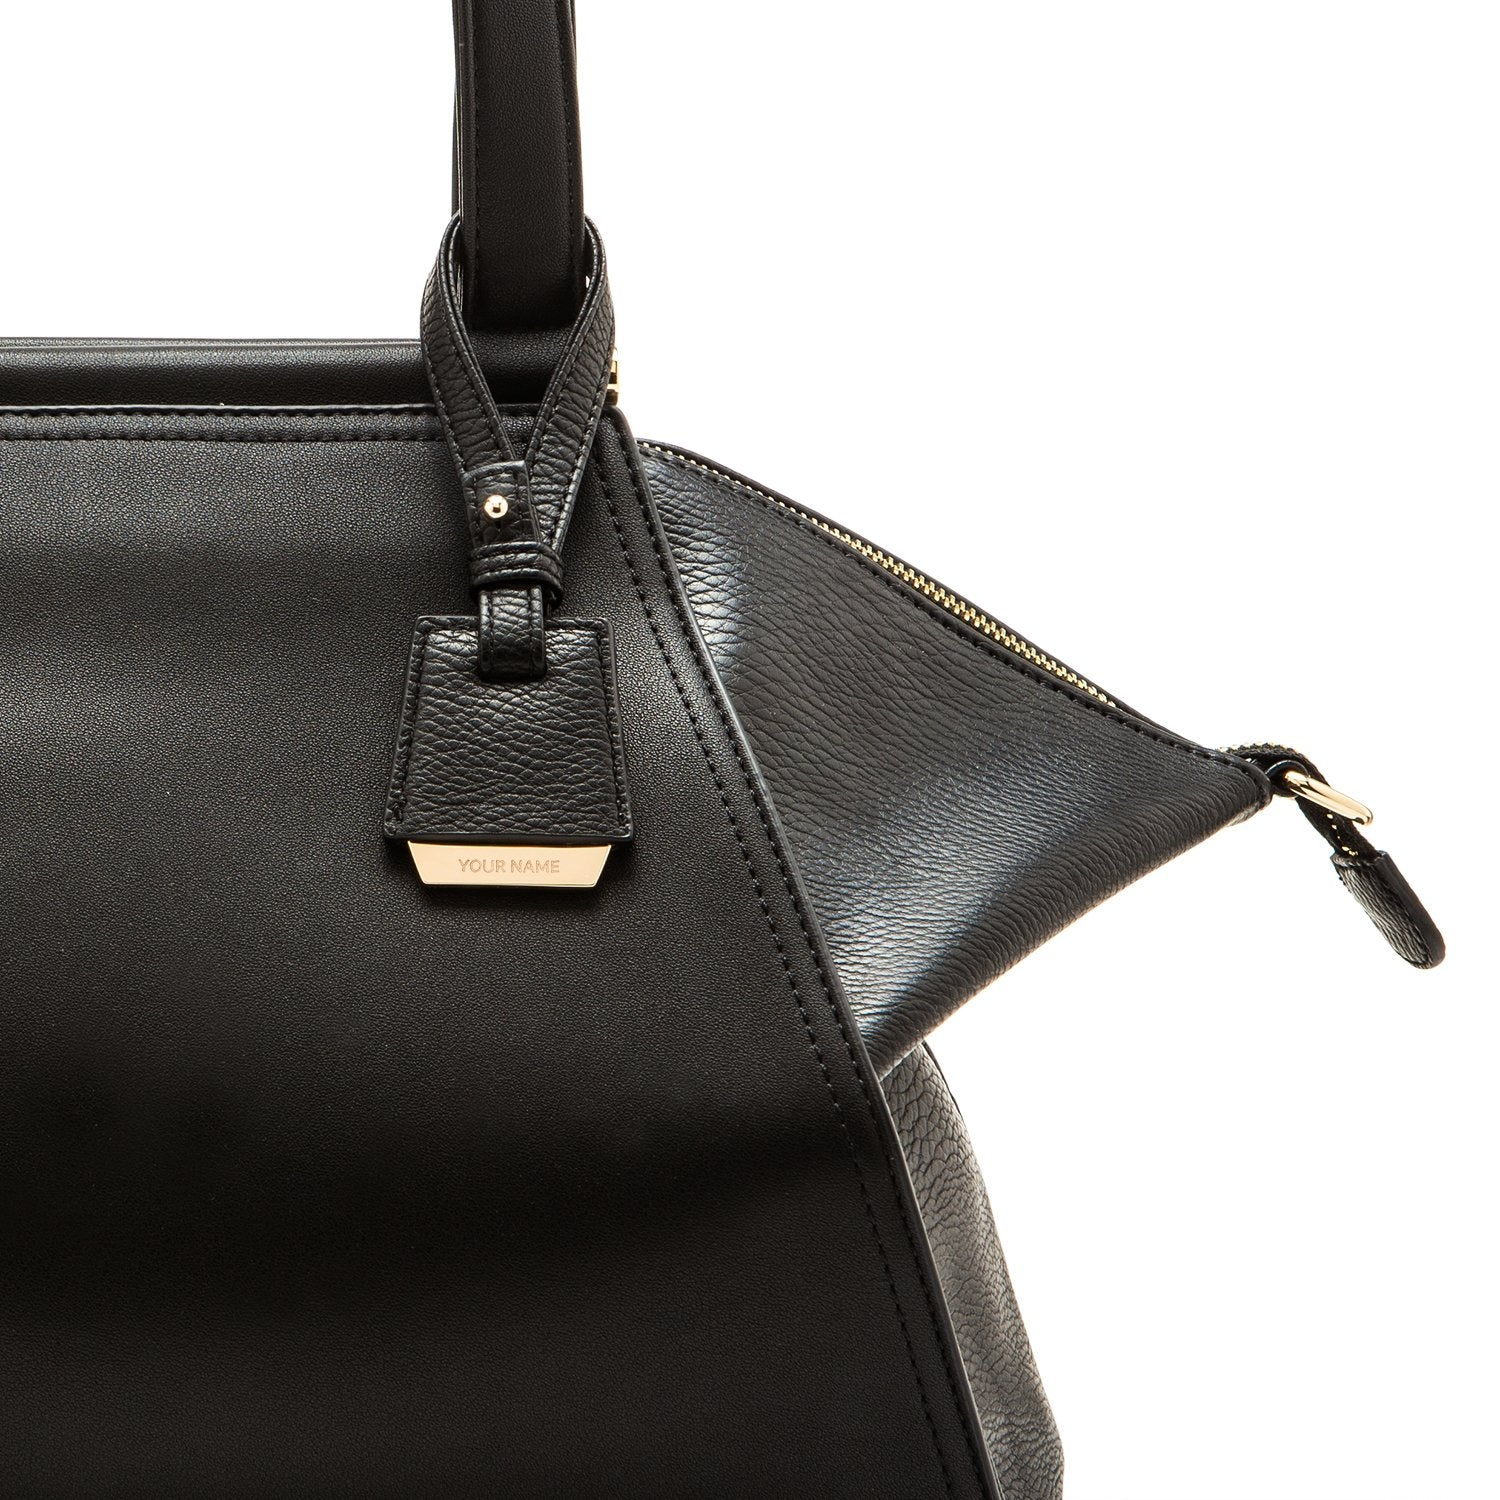 NIK BAG TAG - BLACK